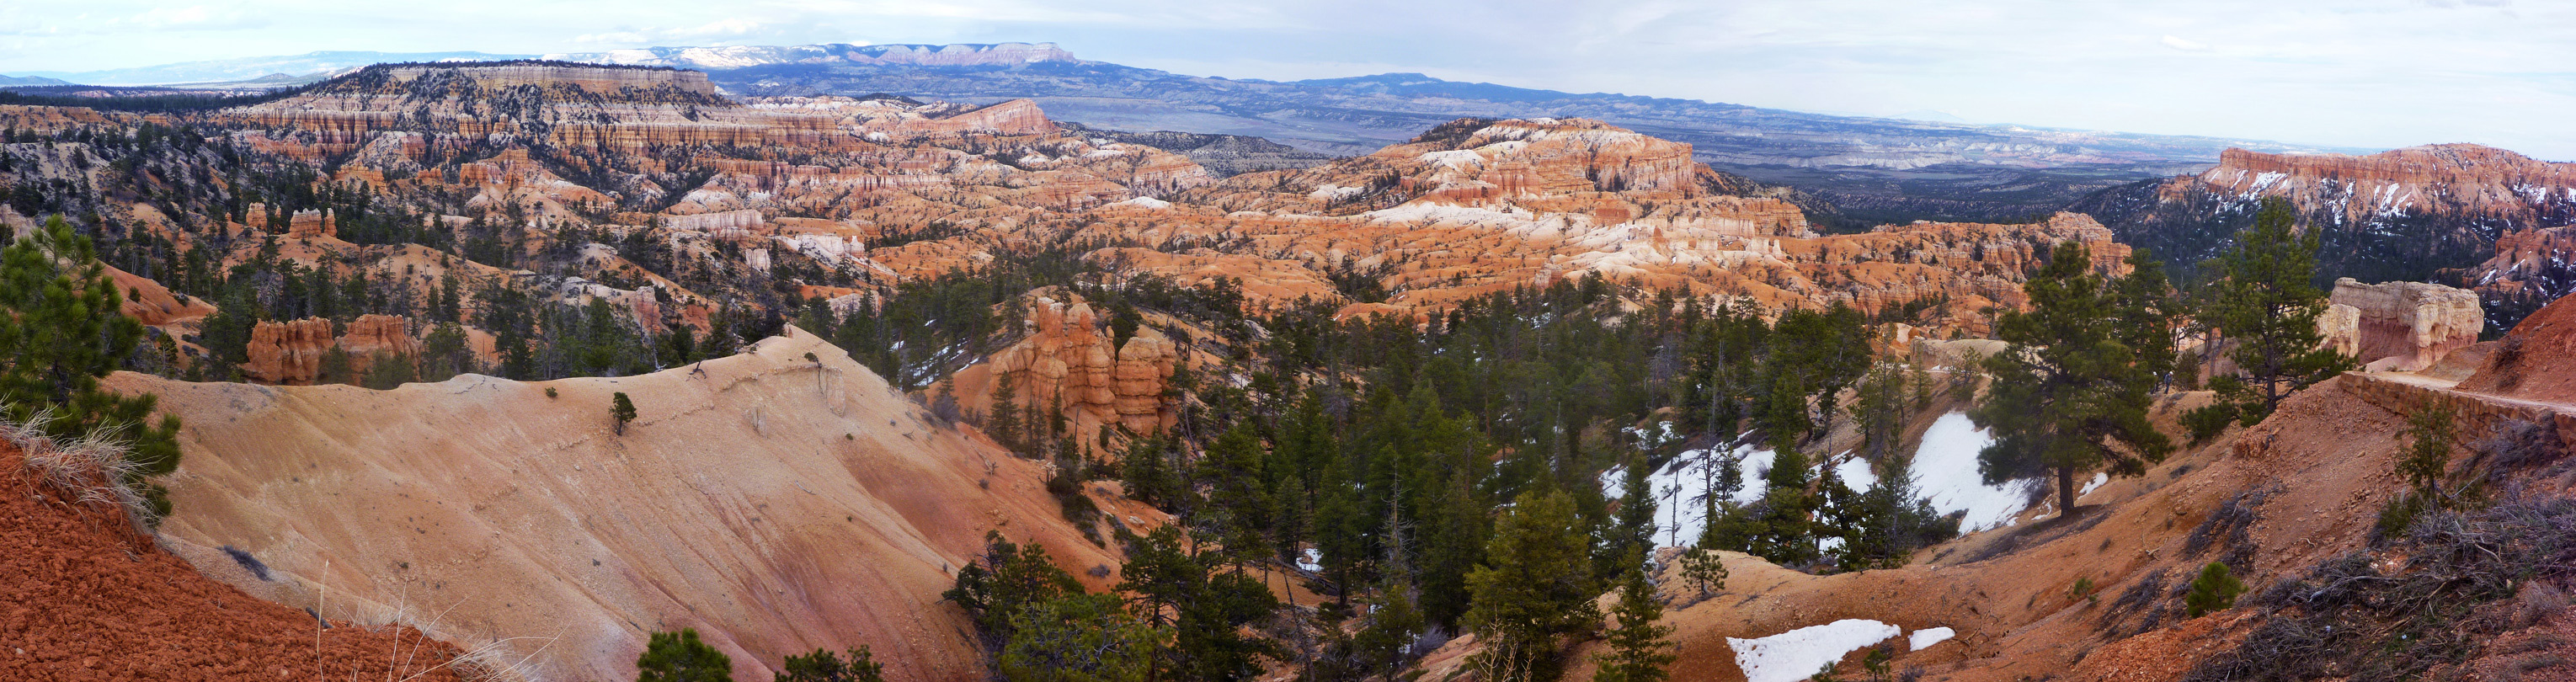 Hoodoos and ridges below Sunrise Point